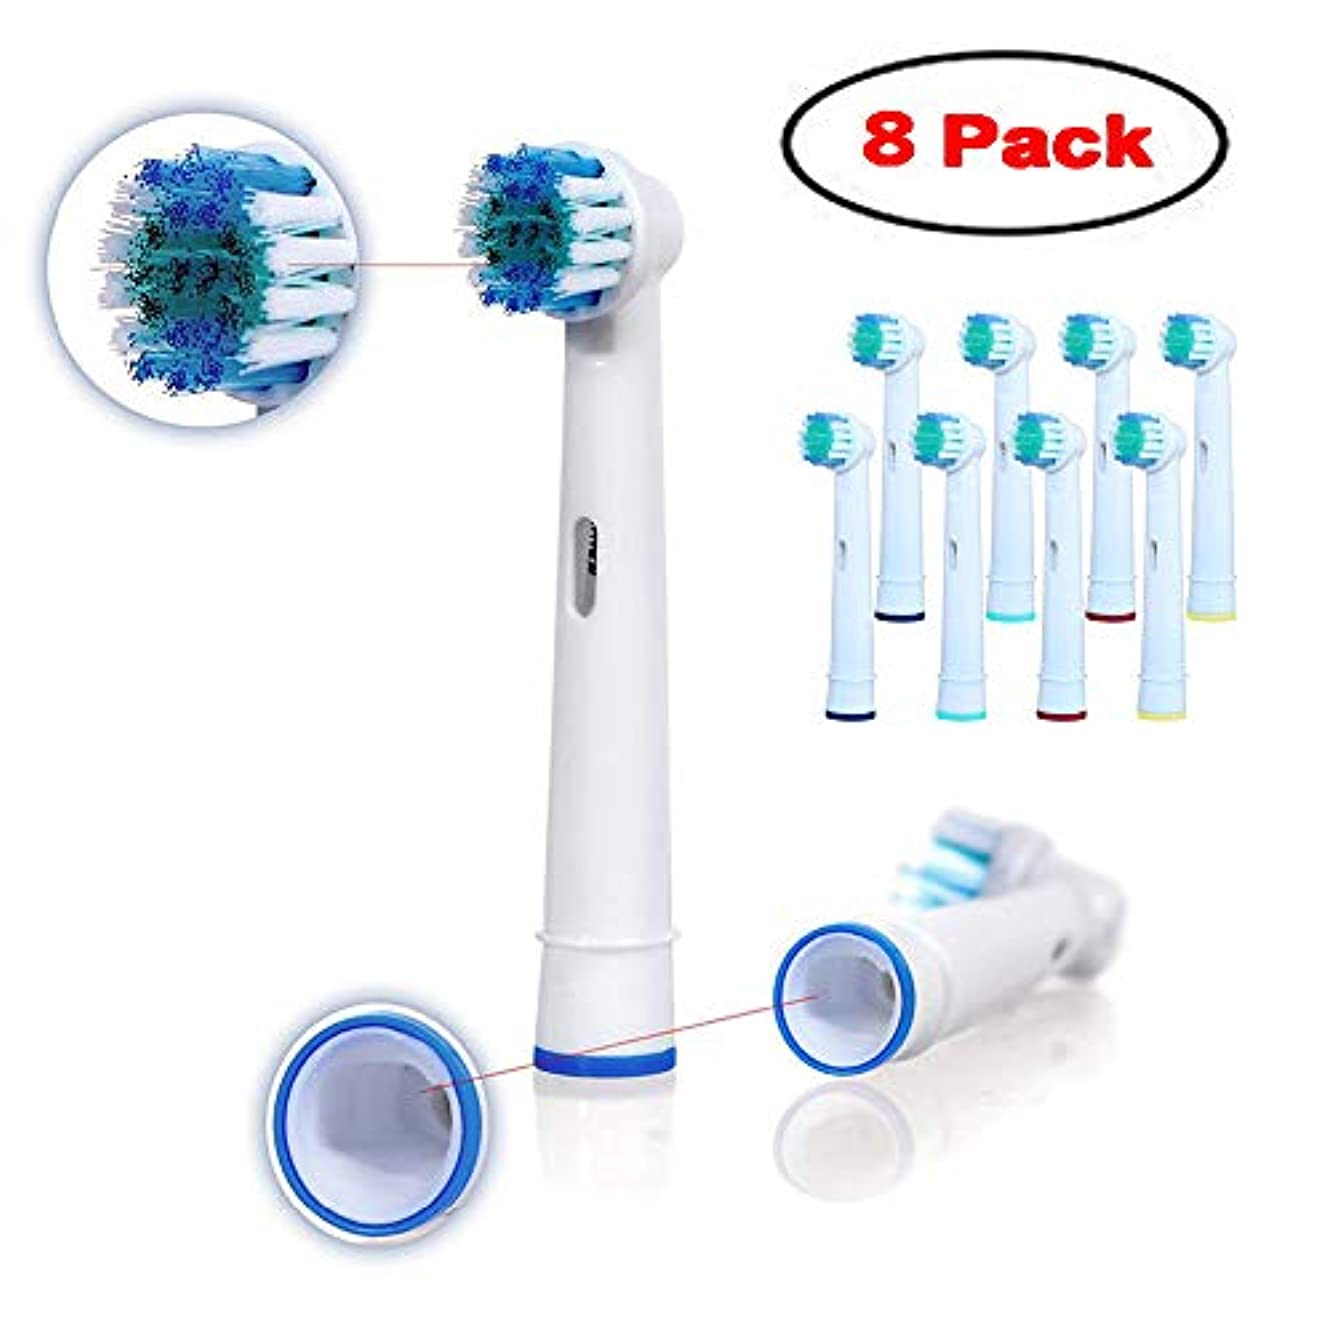 Toothbrush Replacement Heads Refill for Oral-B Electric(8 Count)